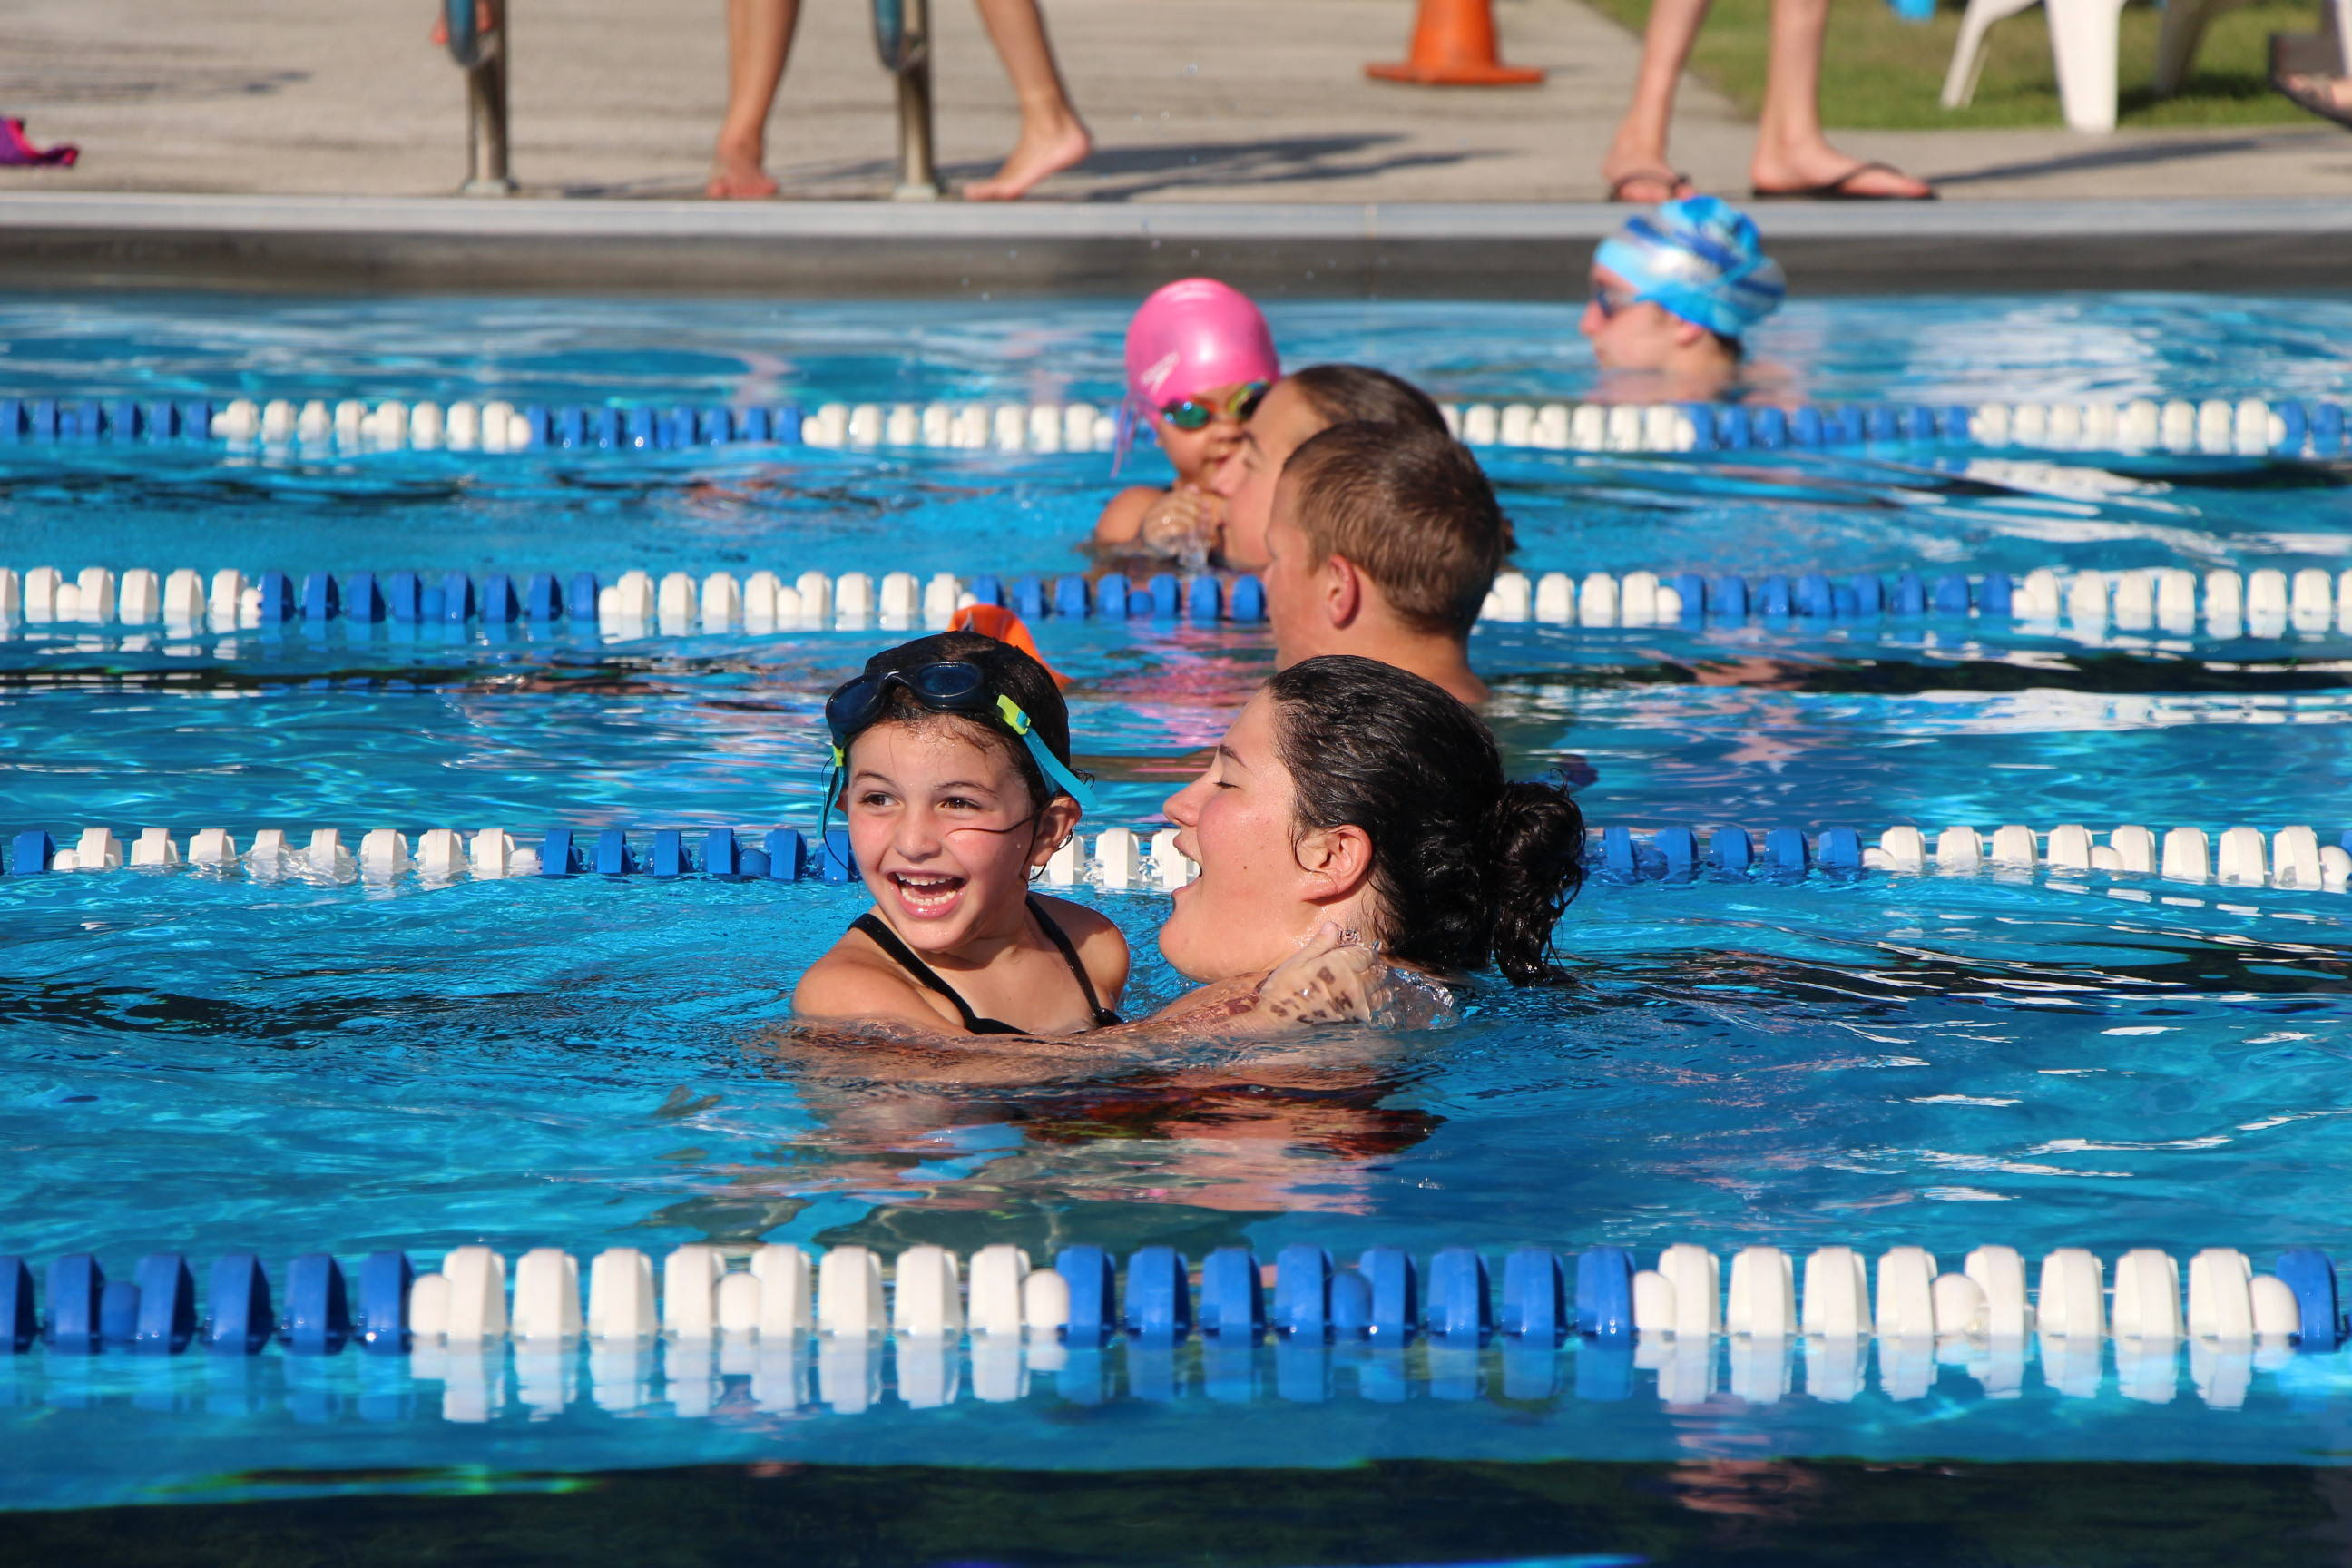 d315ae42b5a040682a13_EDIT_young_female_swimmer_with_catcher.jpg